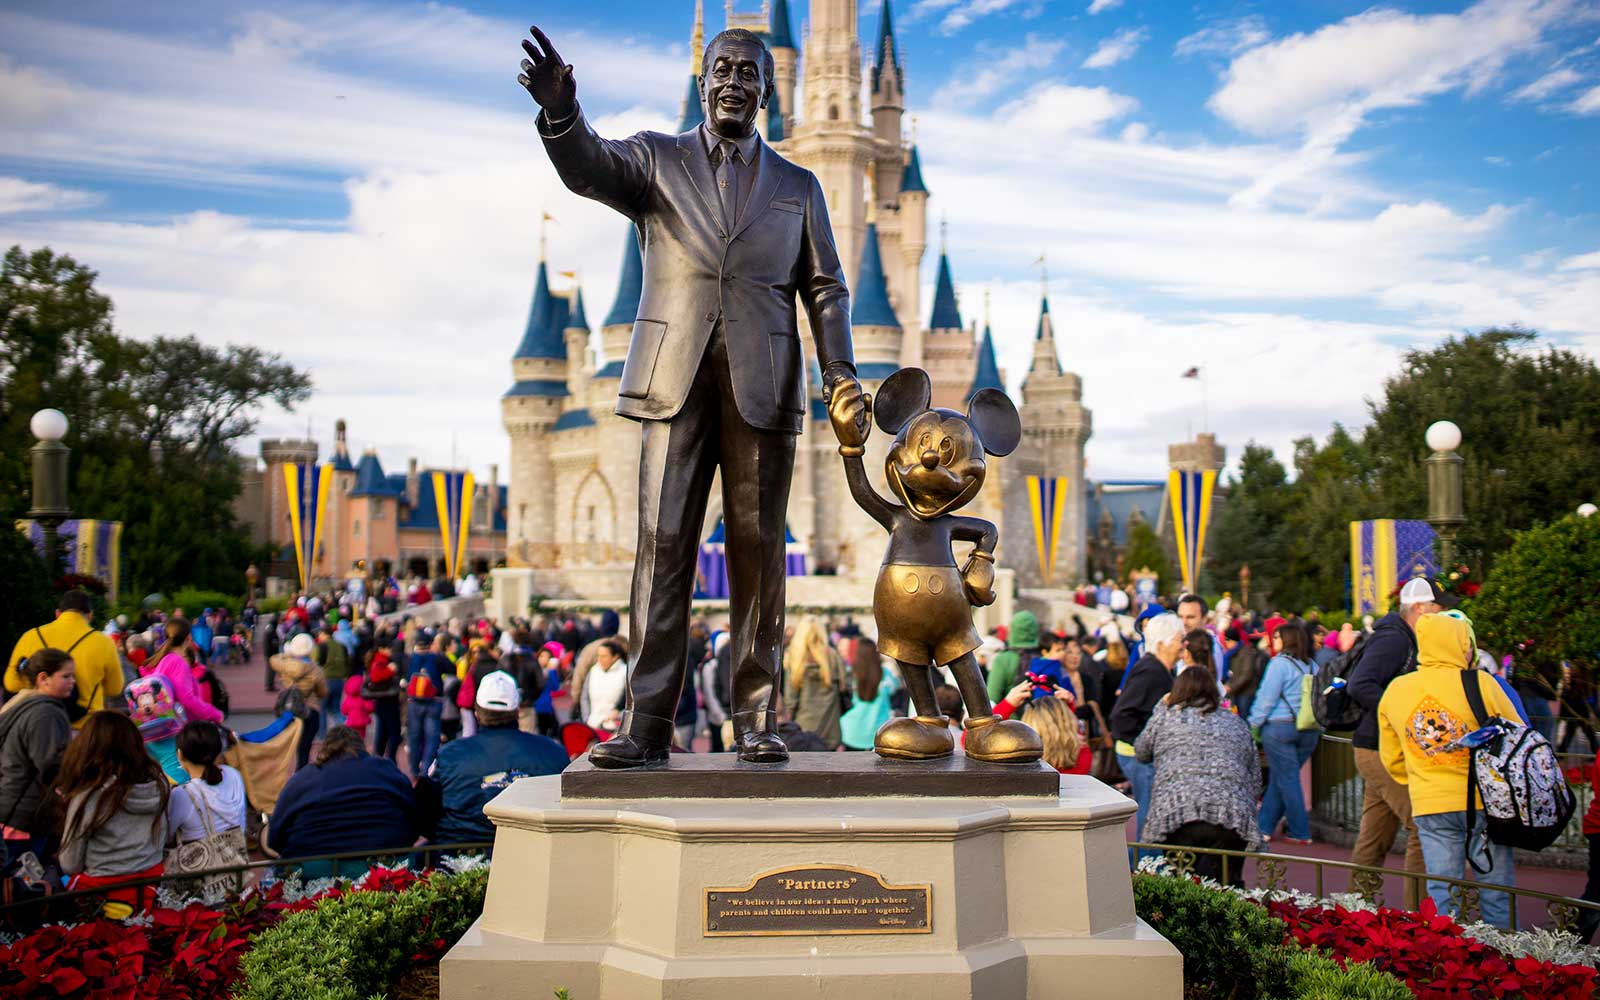 Disney's Update to the Magic Kingdom Schedule Could Completely Change Your Visit